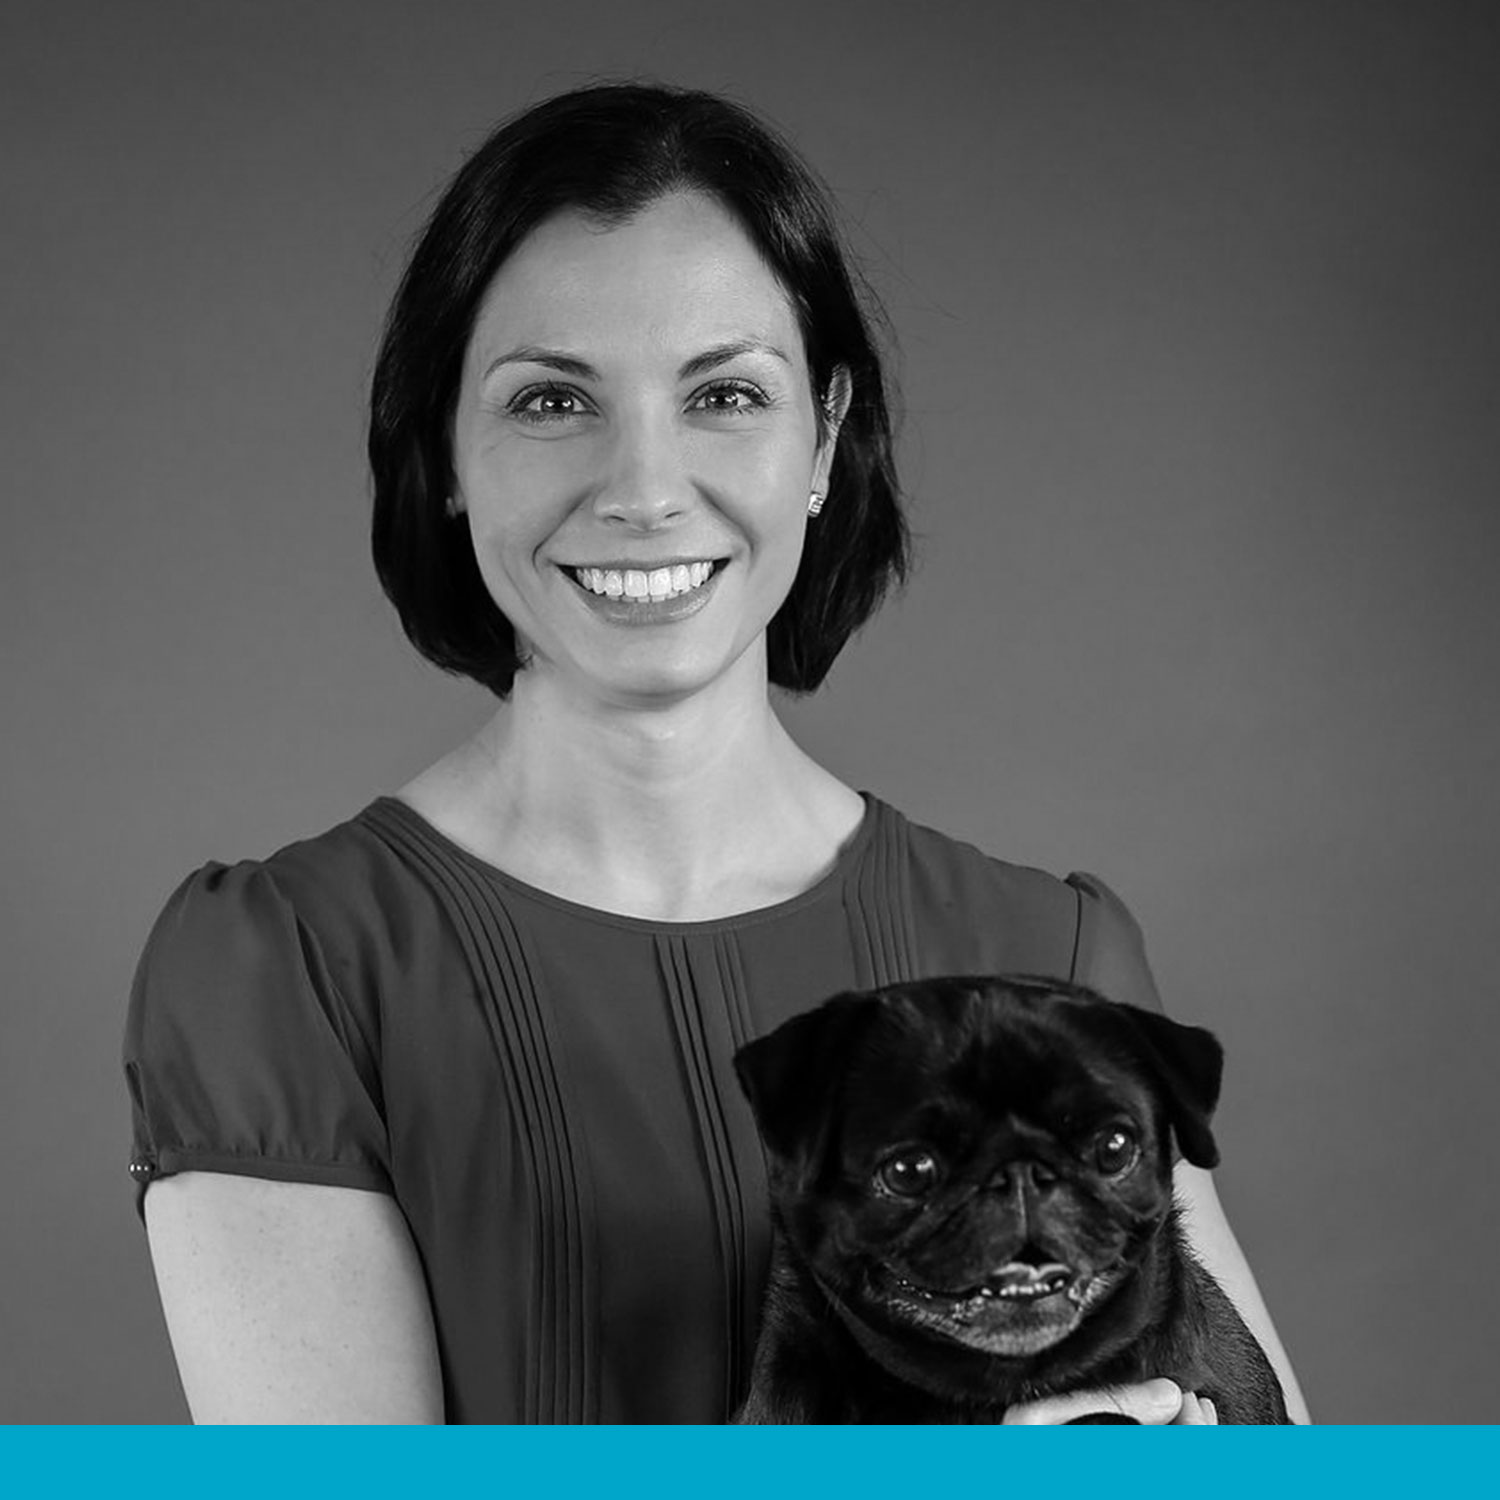 renee streeterDVM, DAVCN - Board-Certified Veterinary Nutritionist